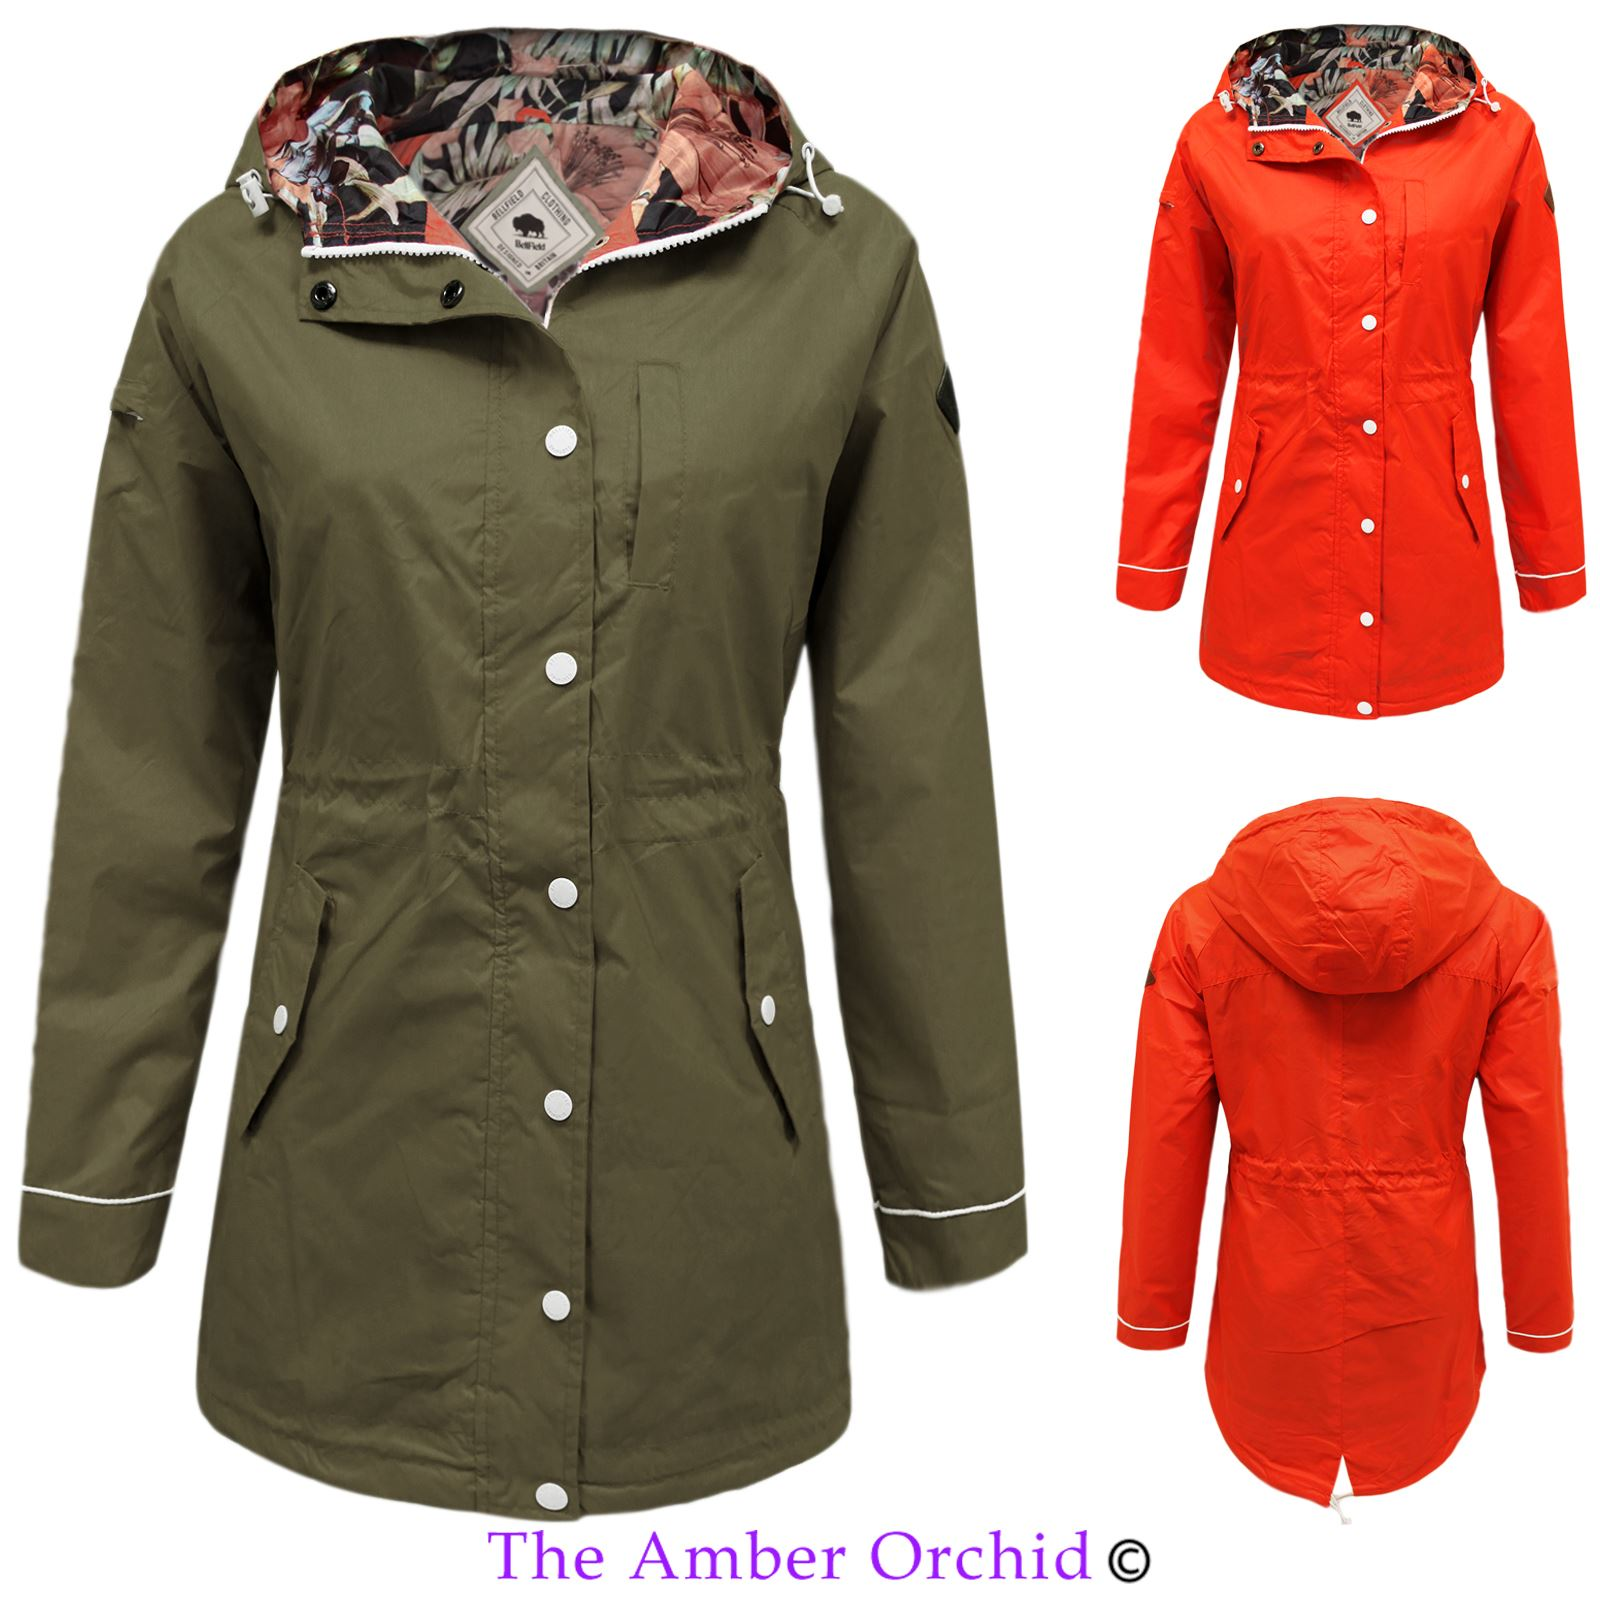 Jacket | Outdoor Jacket - Part 612